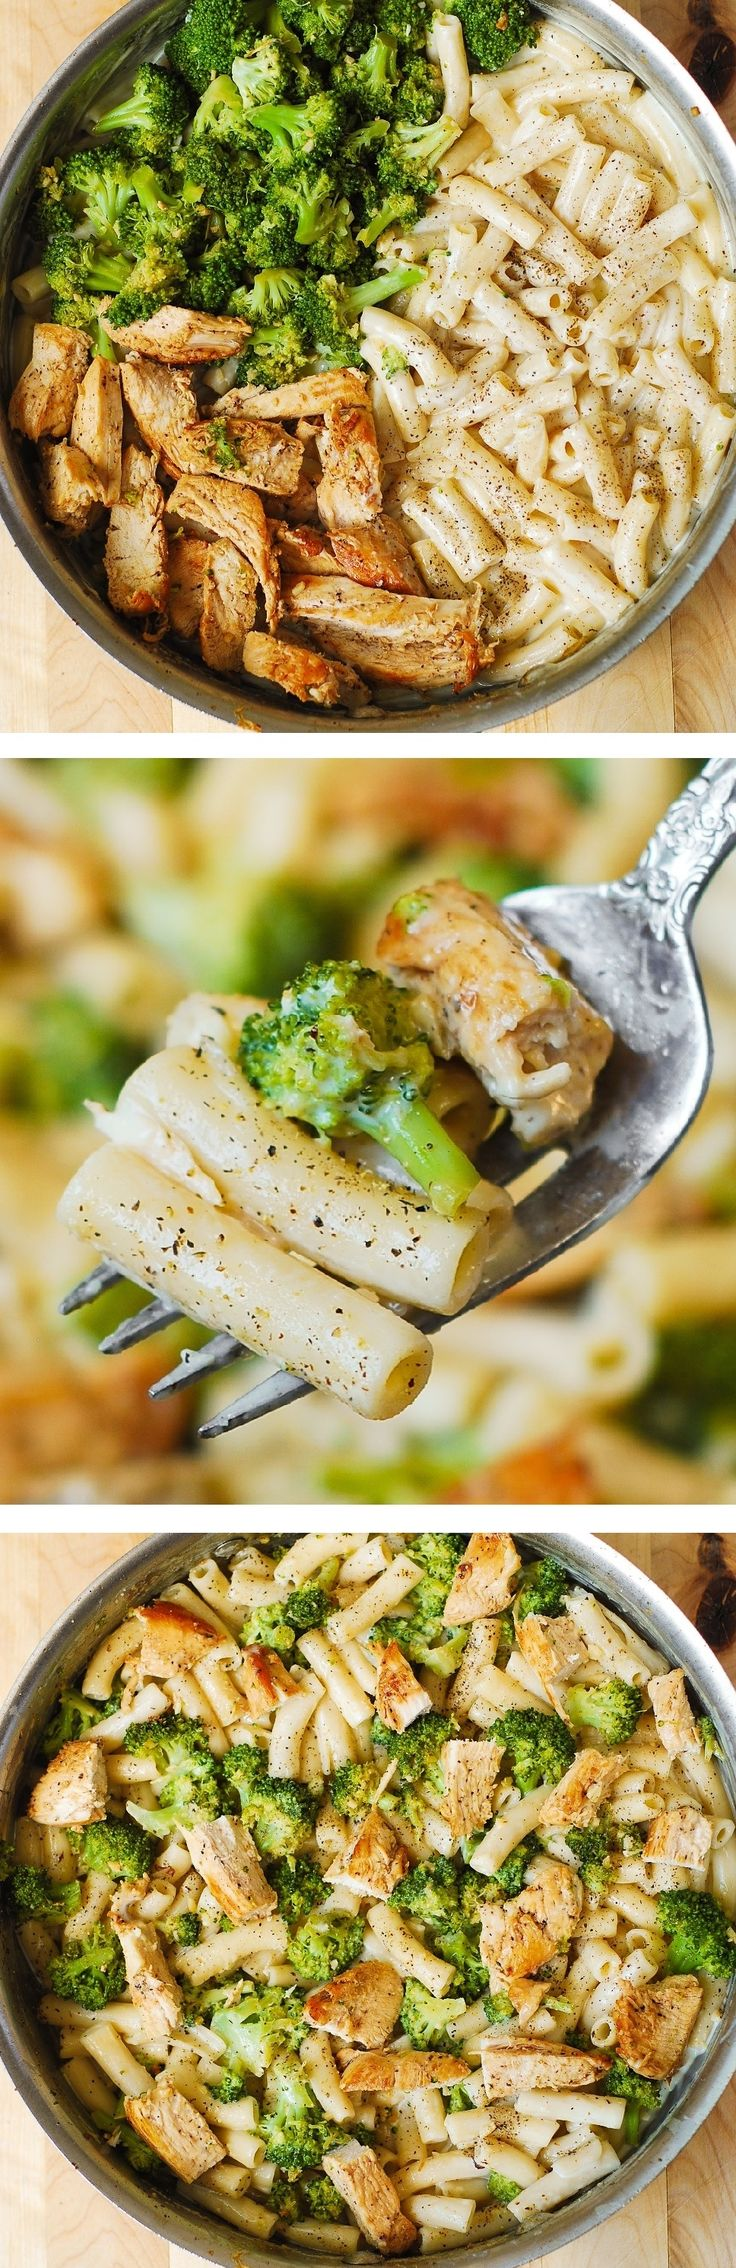 Chicken Broccoli Alfredo Penne Pasta – With homemade white cheese cream sauce….